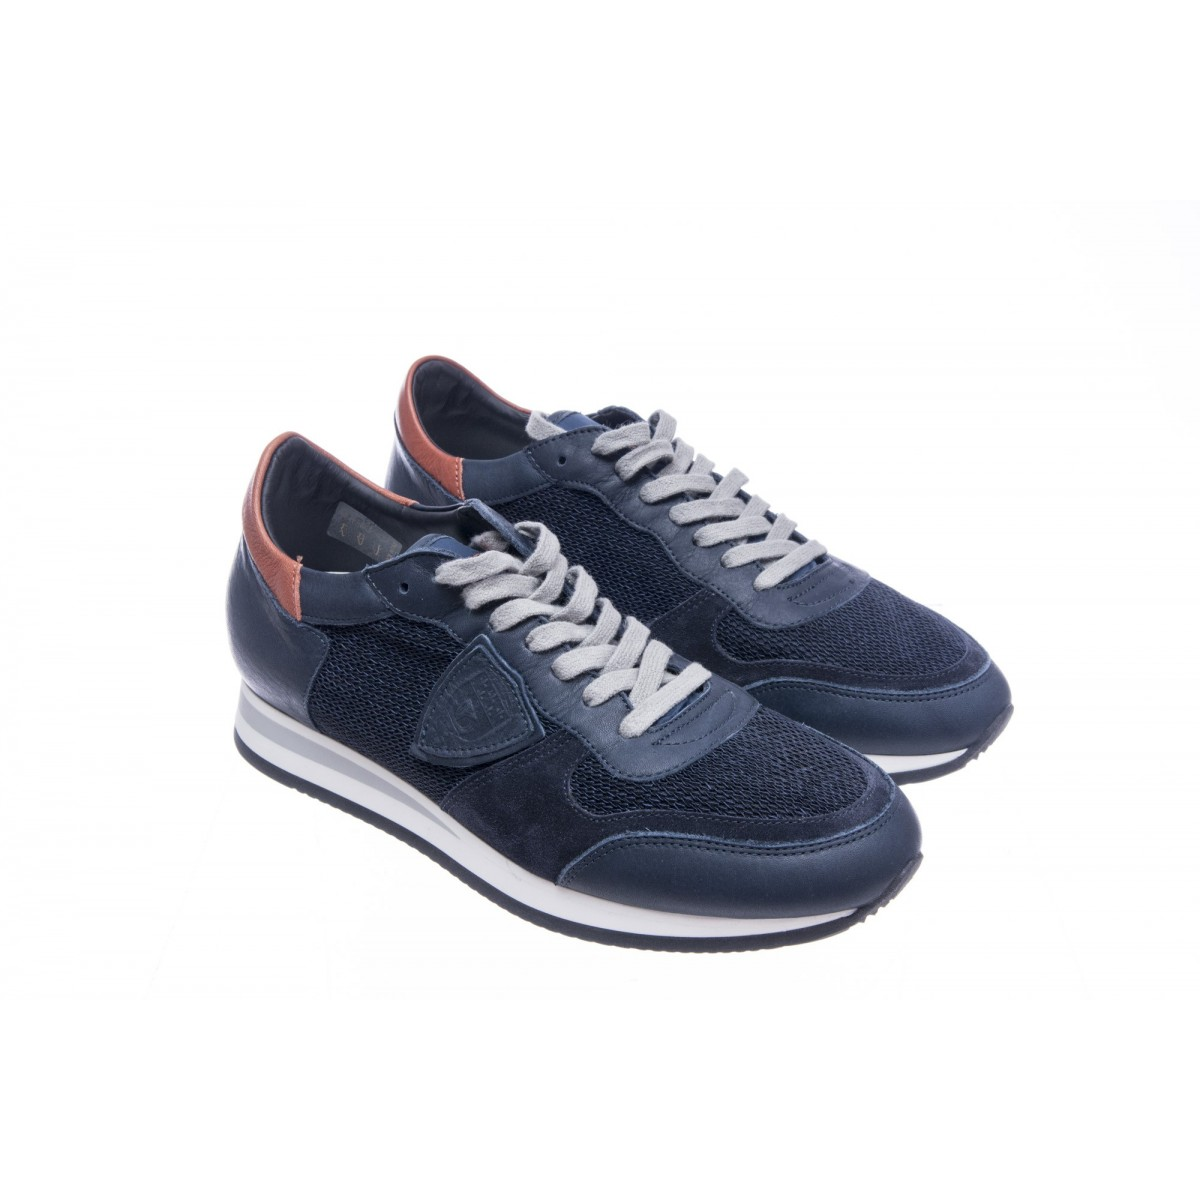 Scarpa Philippe model paris - Tslu tropez sport low